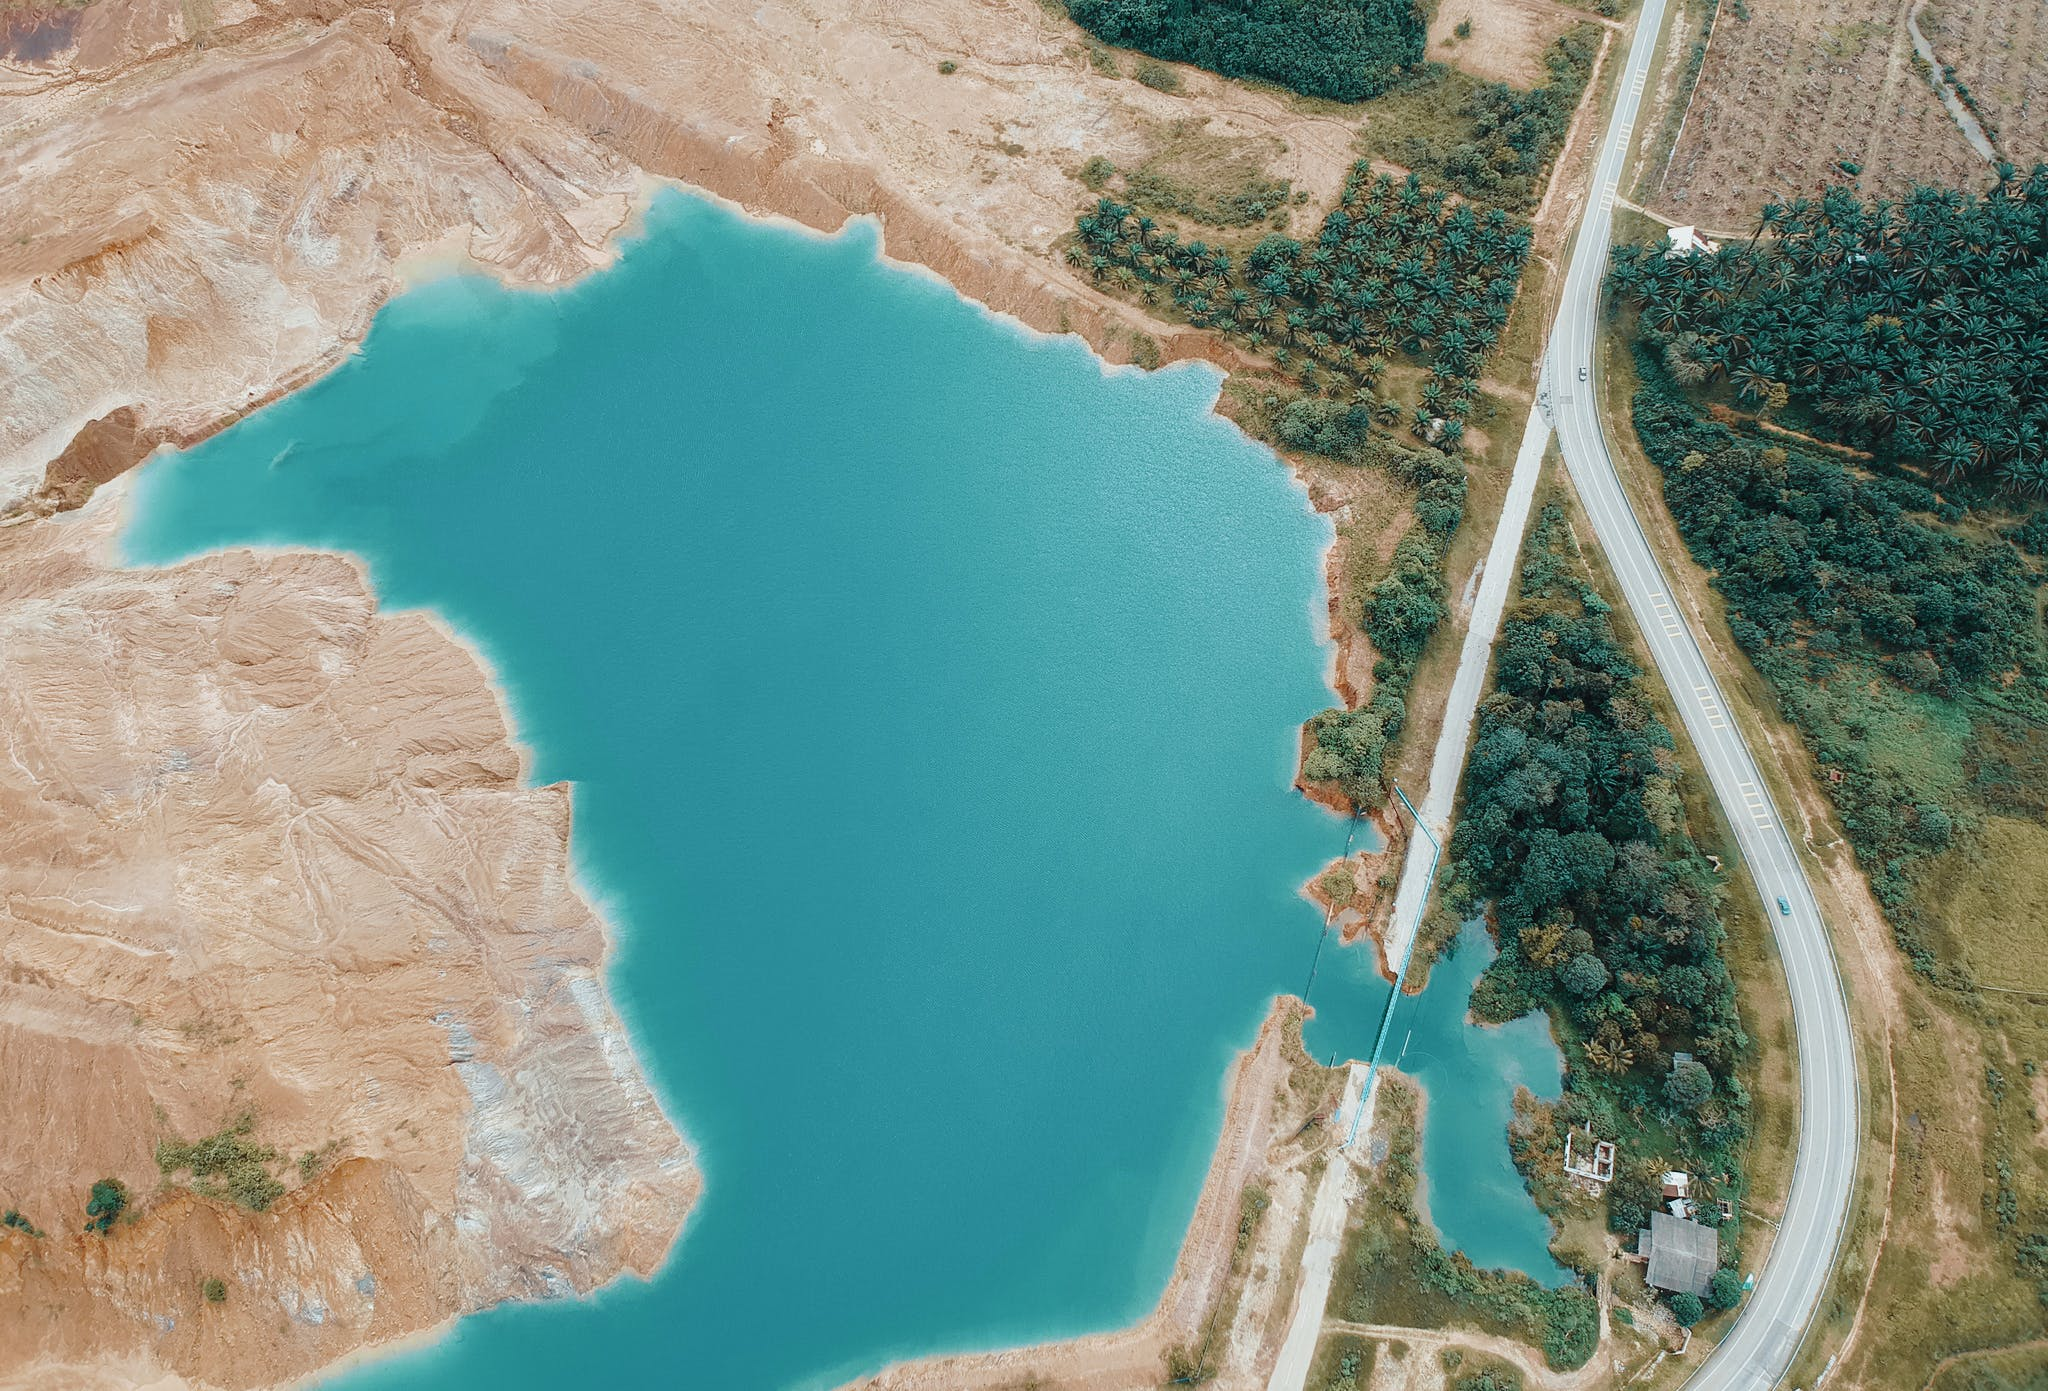 Aerial Photo of Lake Near Highway